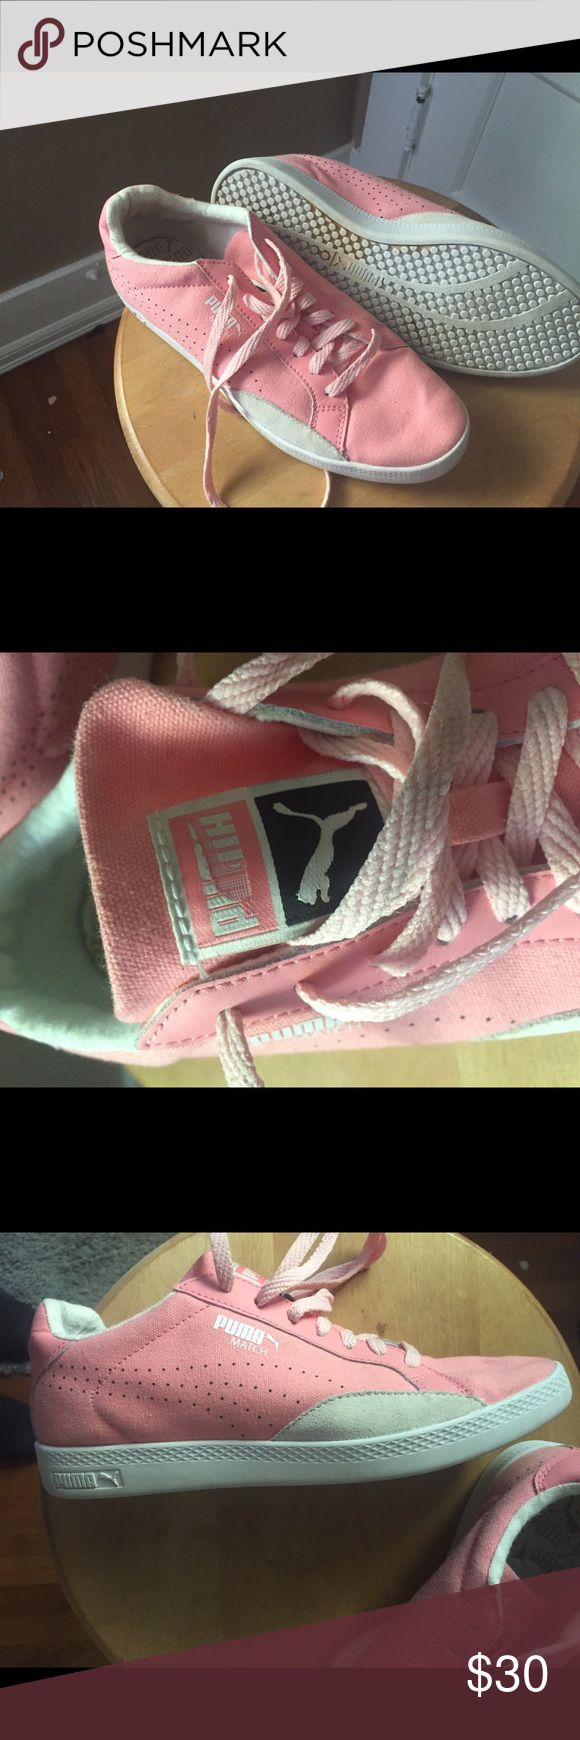 Bubblegum pink pumas Size 7.5 only worn a few times, good quality! Puma Shoes Athletic Shoes